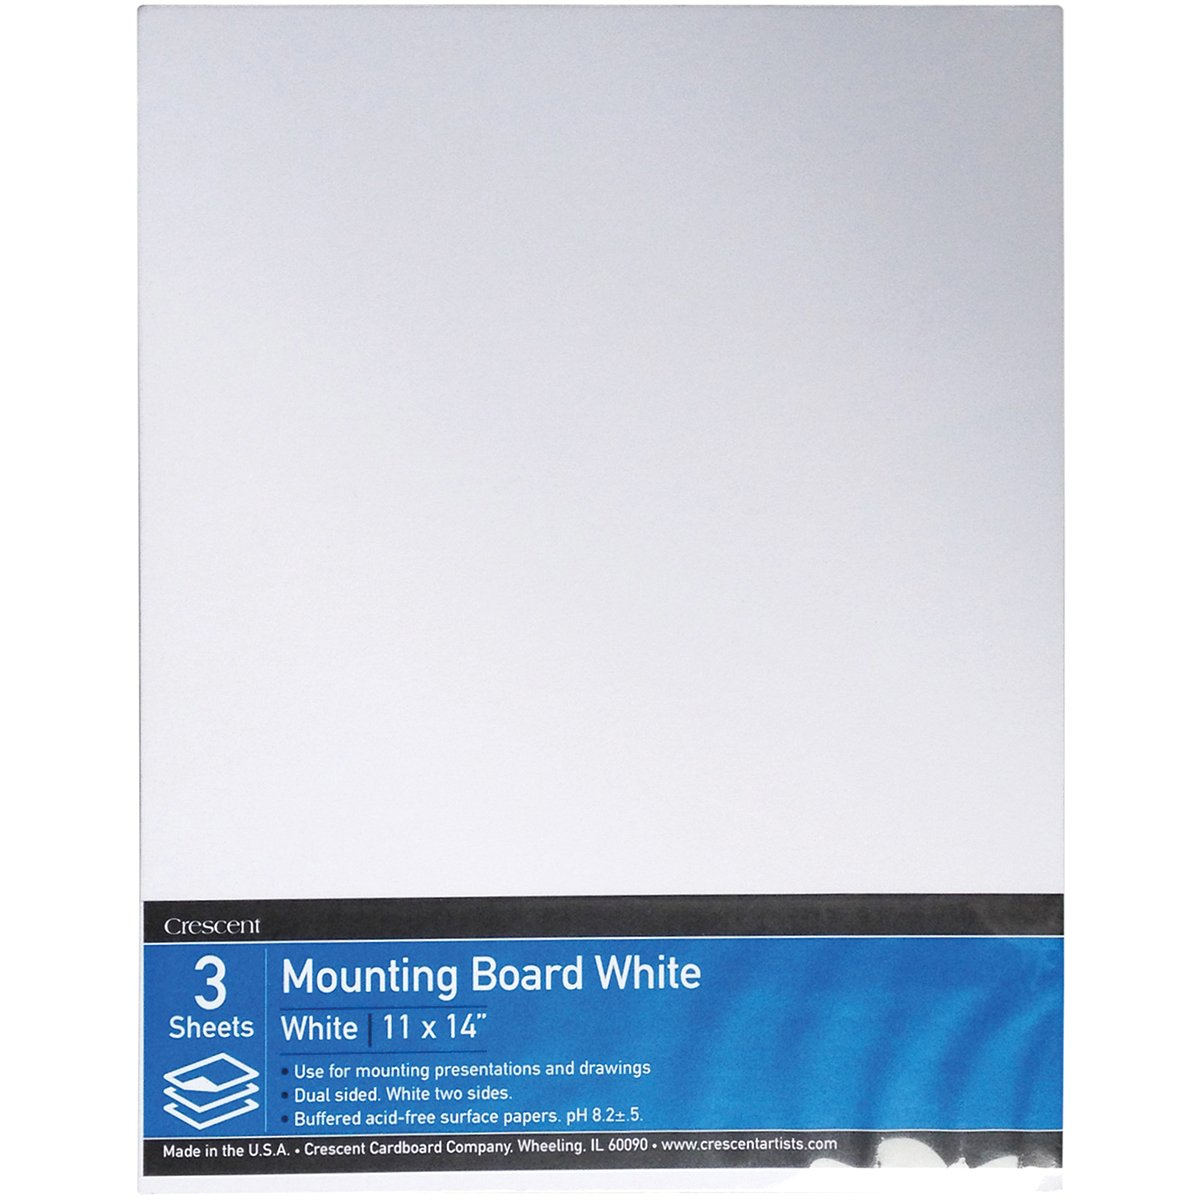 Crescent Cardboard Mounting Value Pack, 9 by 12-Inch, White, 3-Pack Crescent Cardboard Co VPX-0912